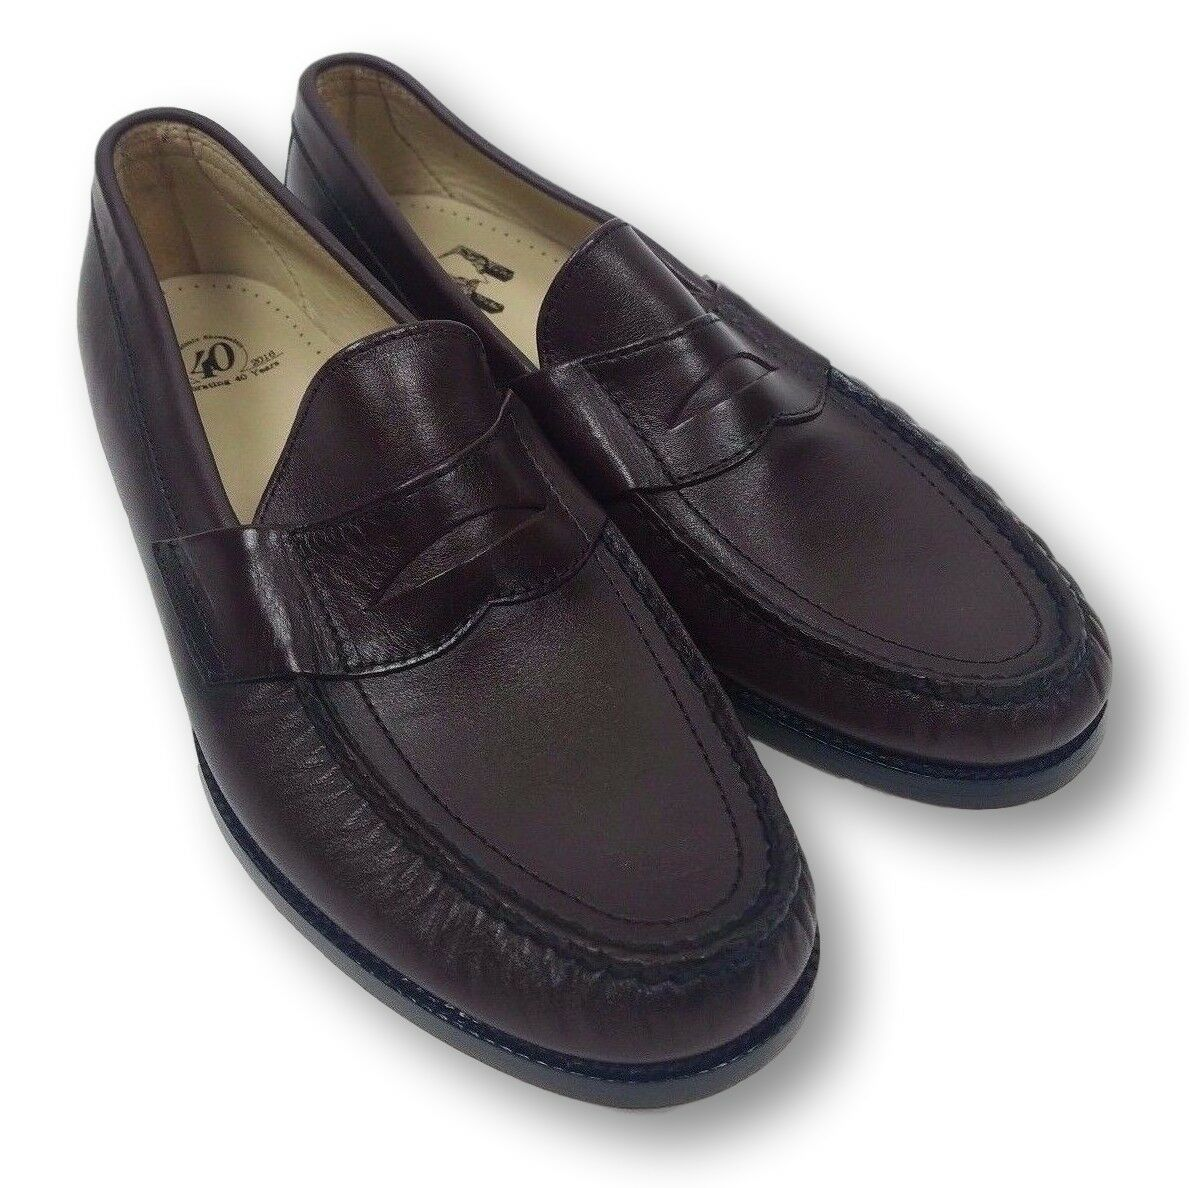 SAS San Antonio Men's 10 Brown Leather Penny 40 Cordovan new shoes Loafer shoes NWOT